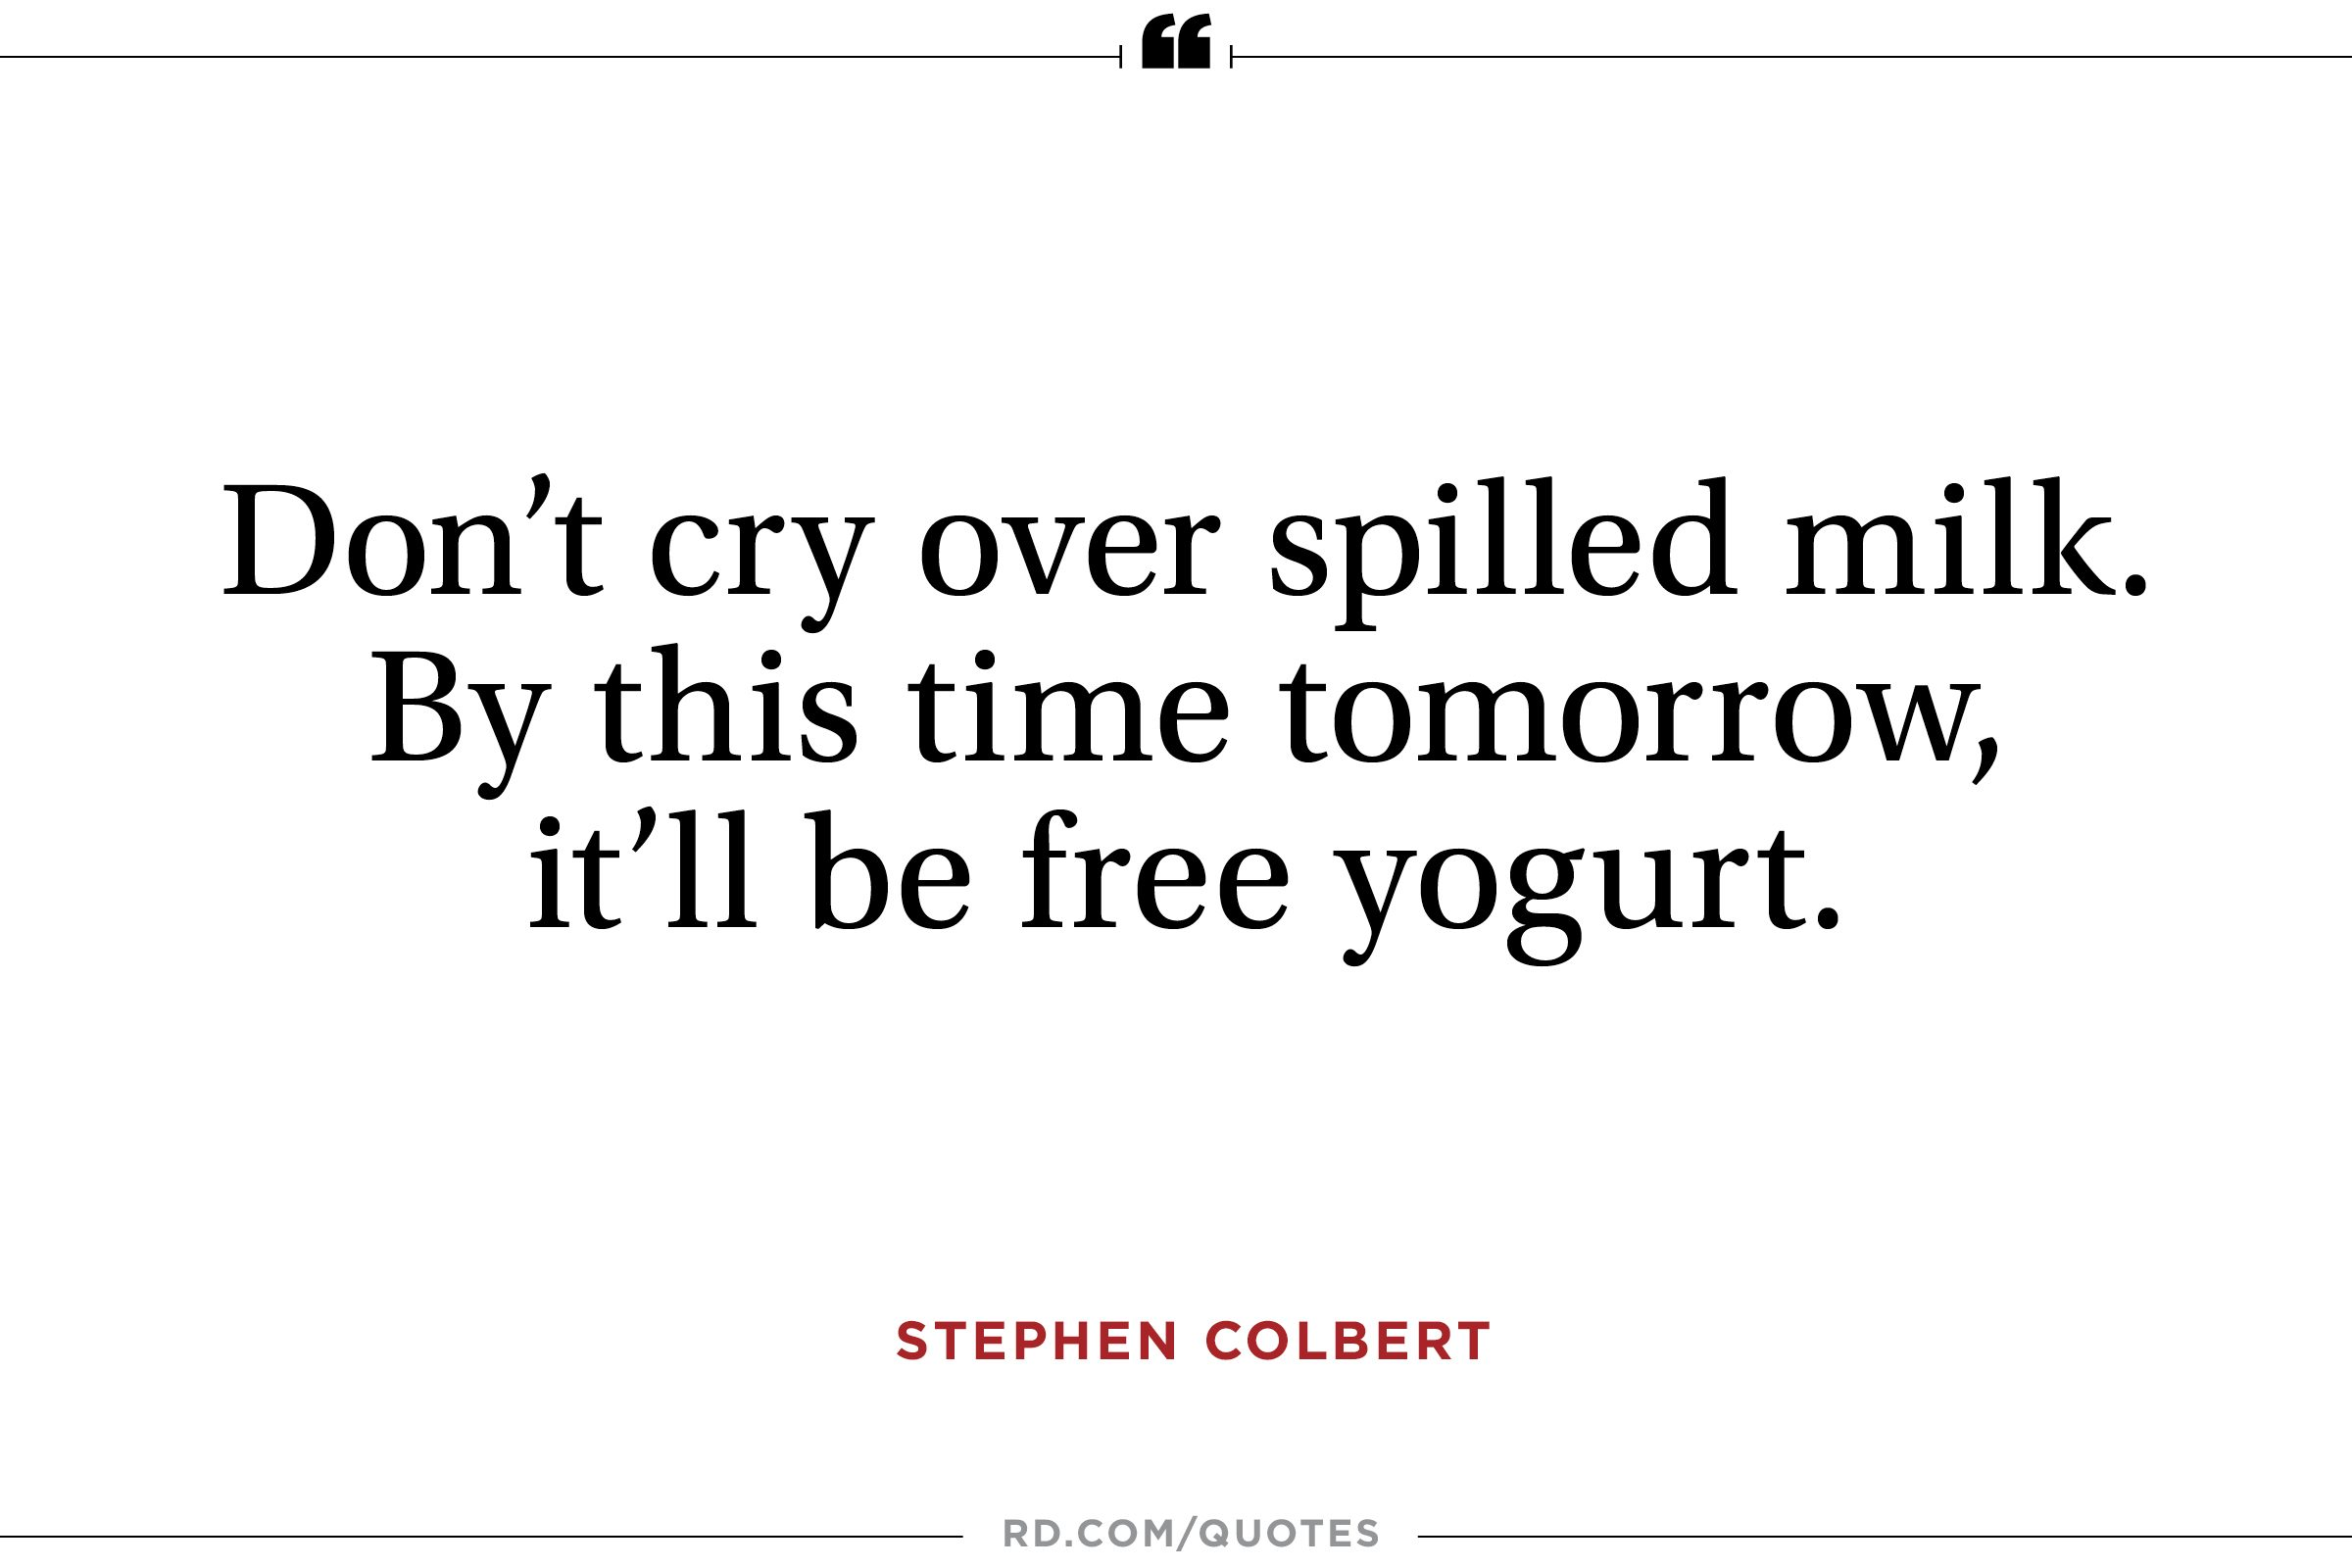 14 Best Ever Stephen Colbert Quotes